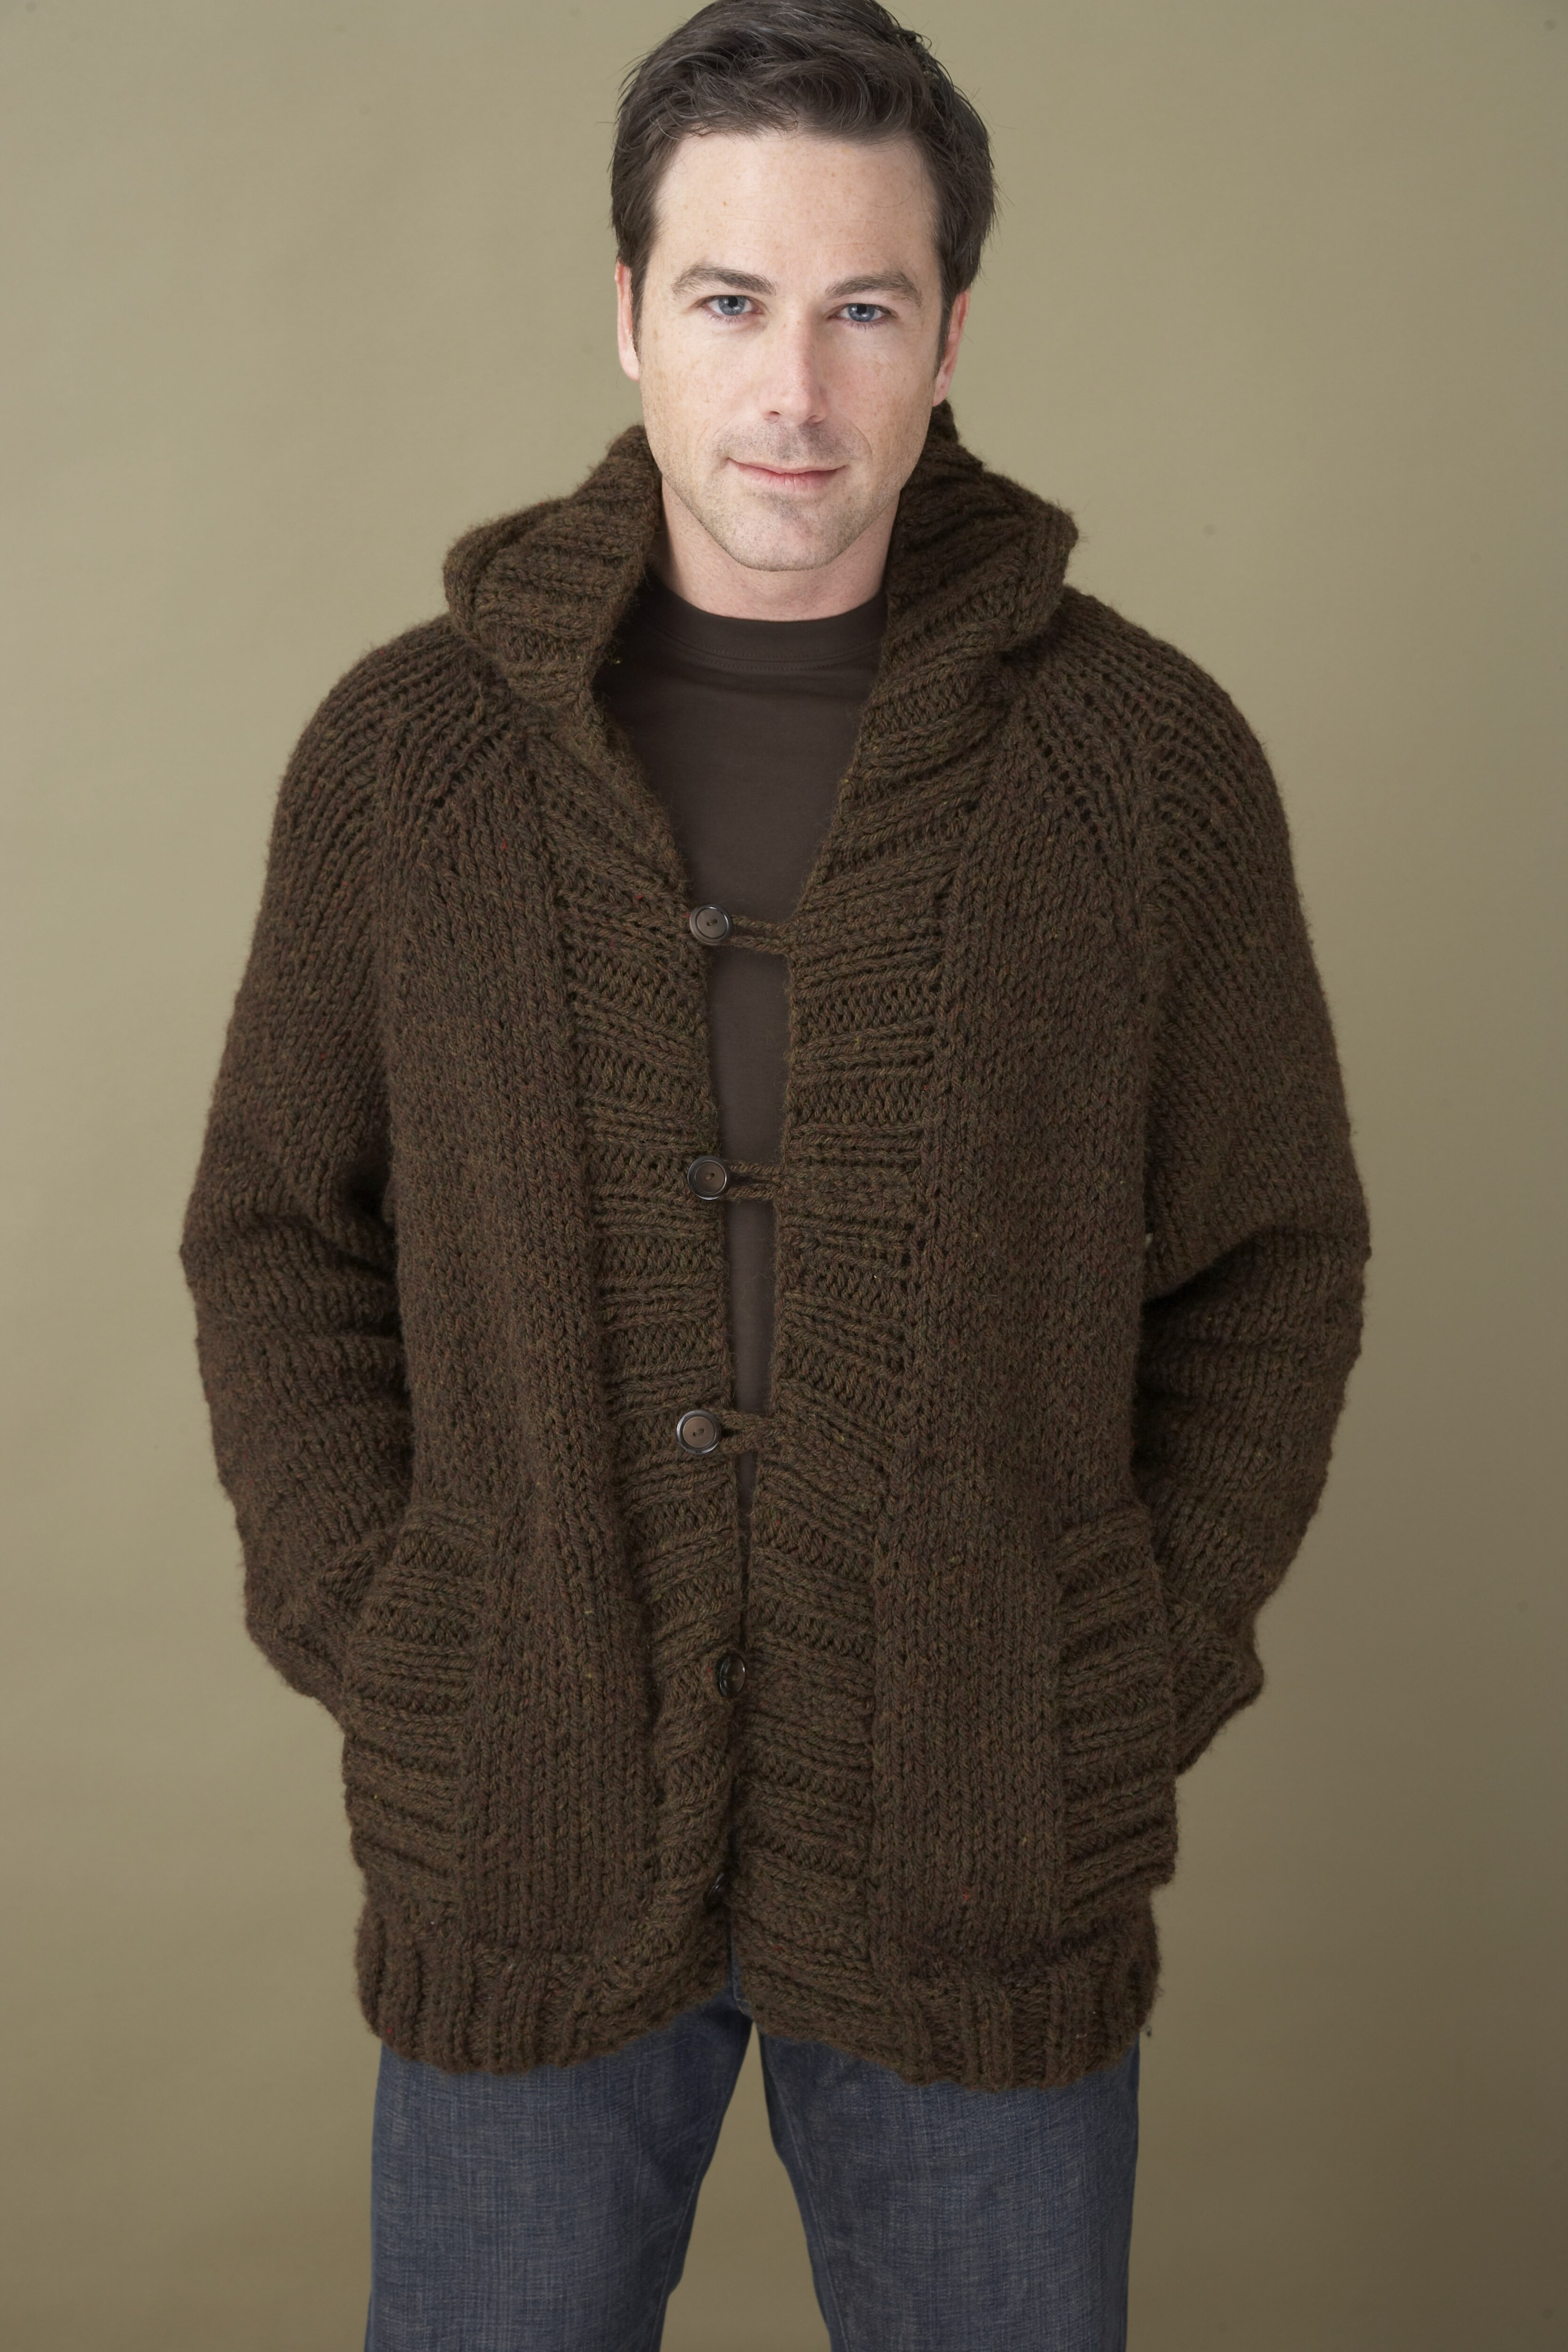 Best Of Saturday Morning Hoo In Lion Brand Wool Ease Chunky Mens Cardigan Knitting Pattern Of Unique 44 Models Mens Cardigan Knitting Pattern